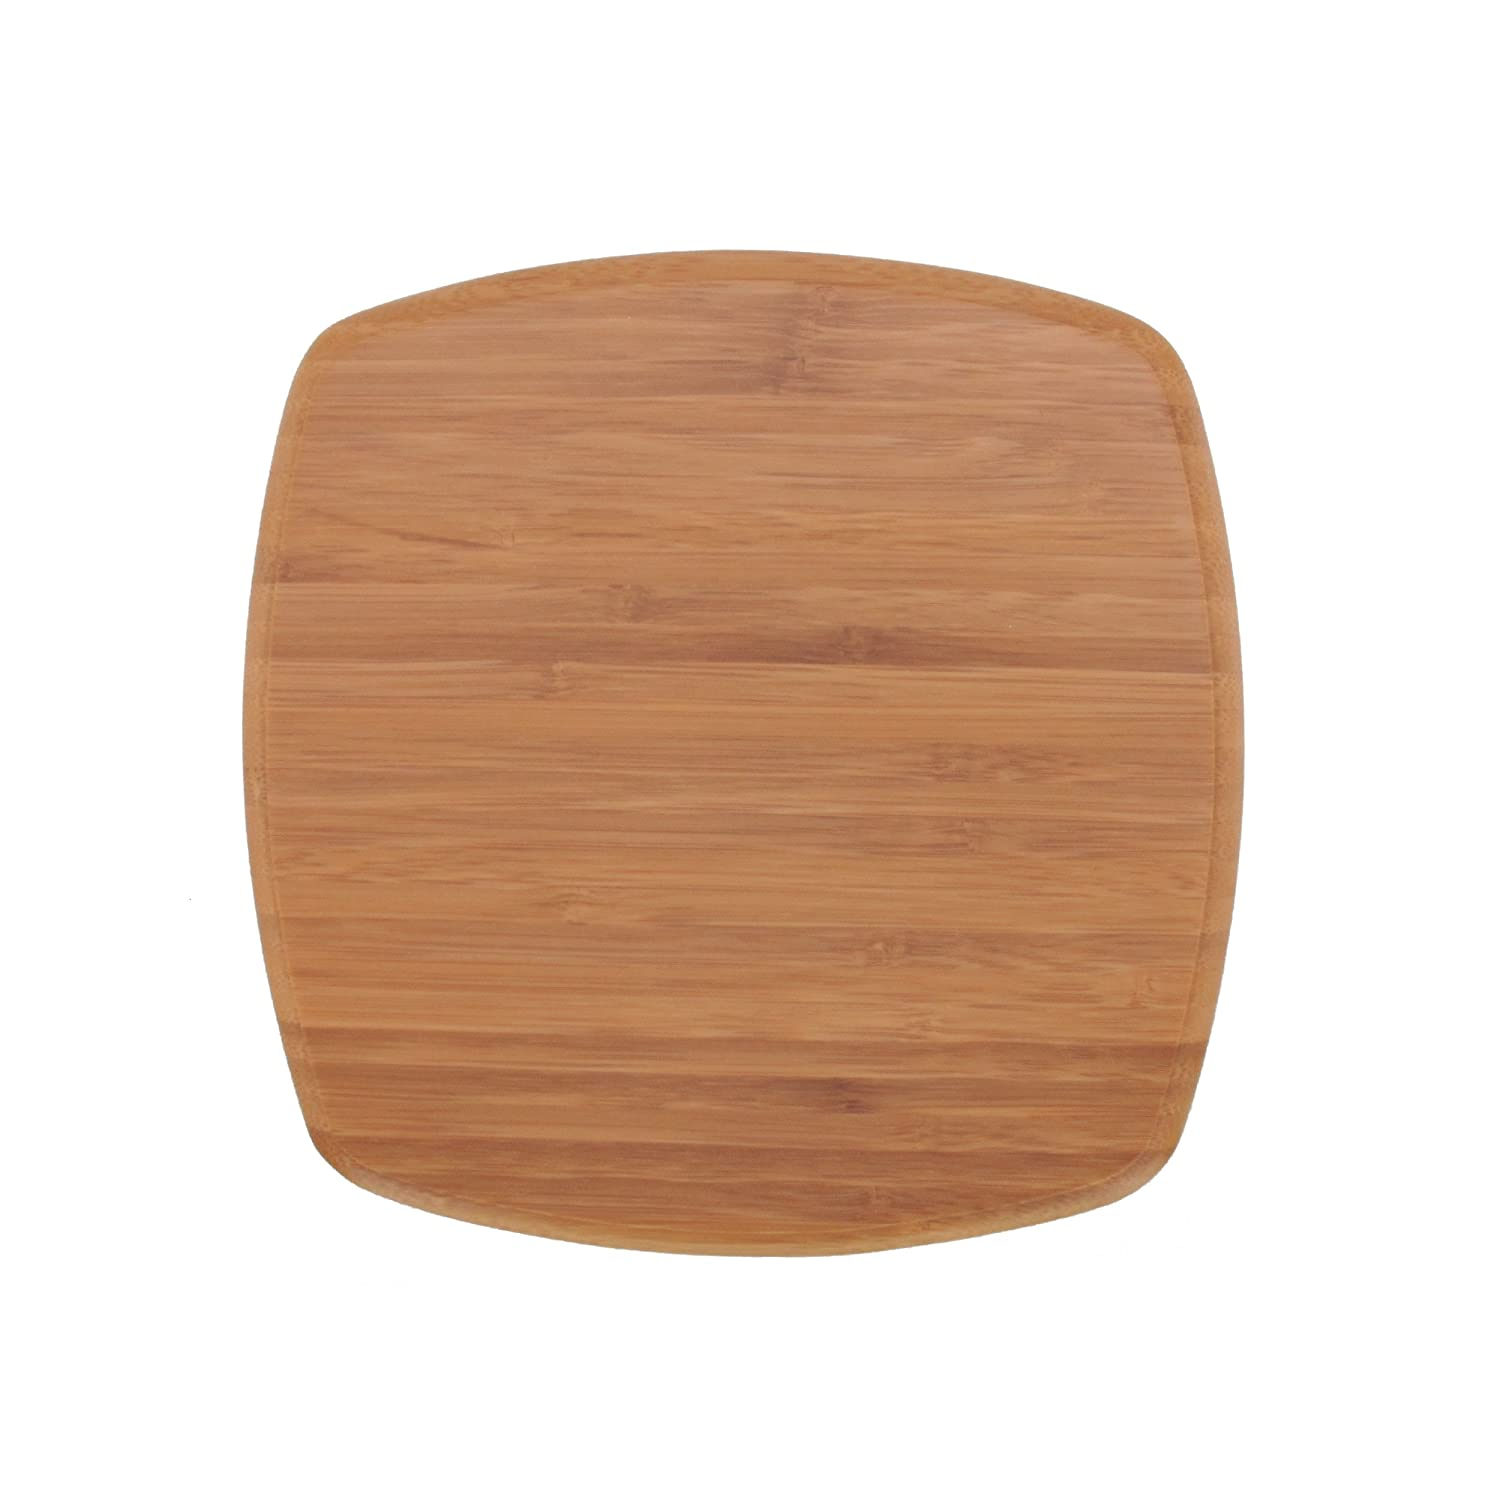 Countertop or Kitchen BambooMN 8 x 8 Organic Bamboo Decorative Display Table Top Tea Serving Tray Plate Holder for Coffee Dining Table